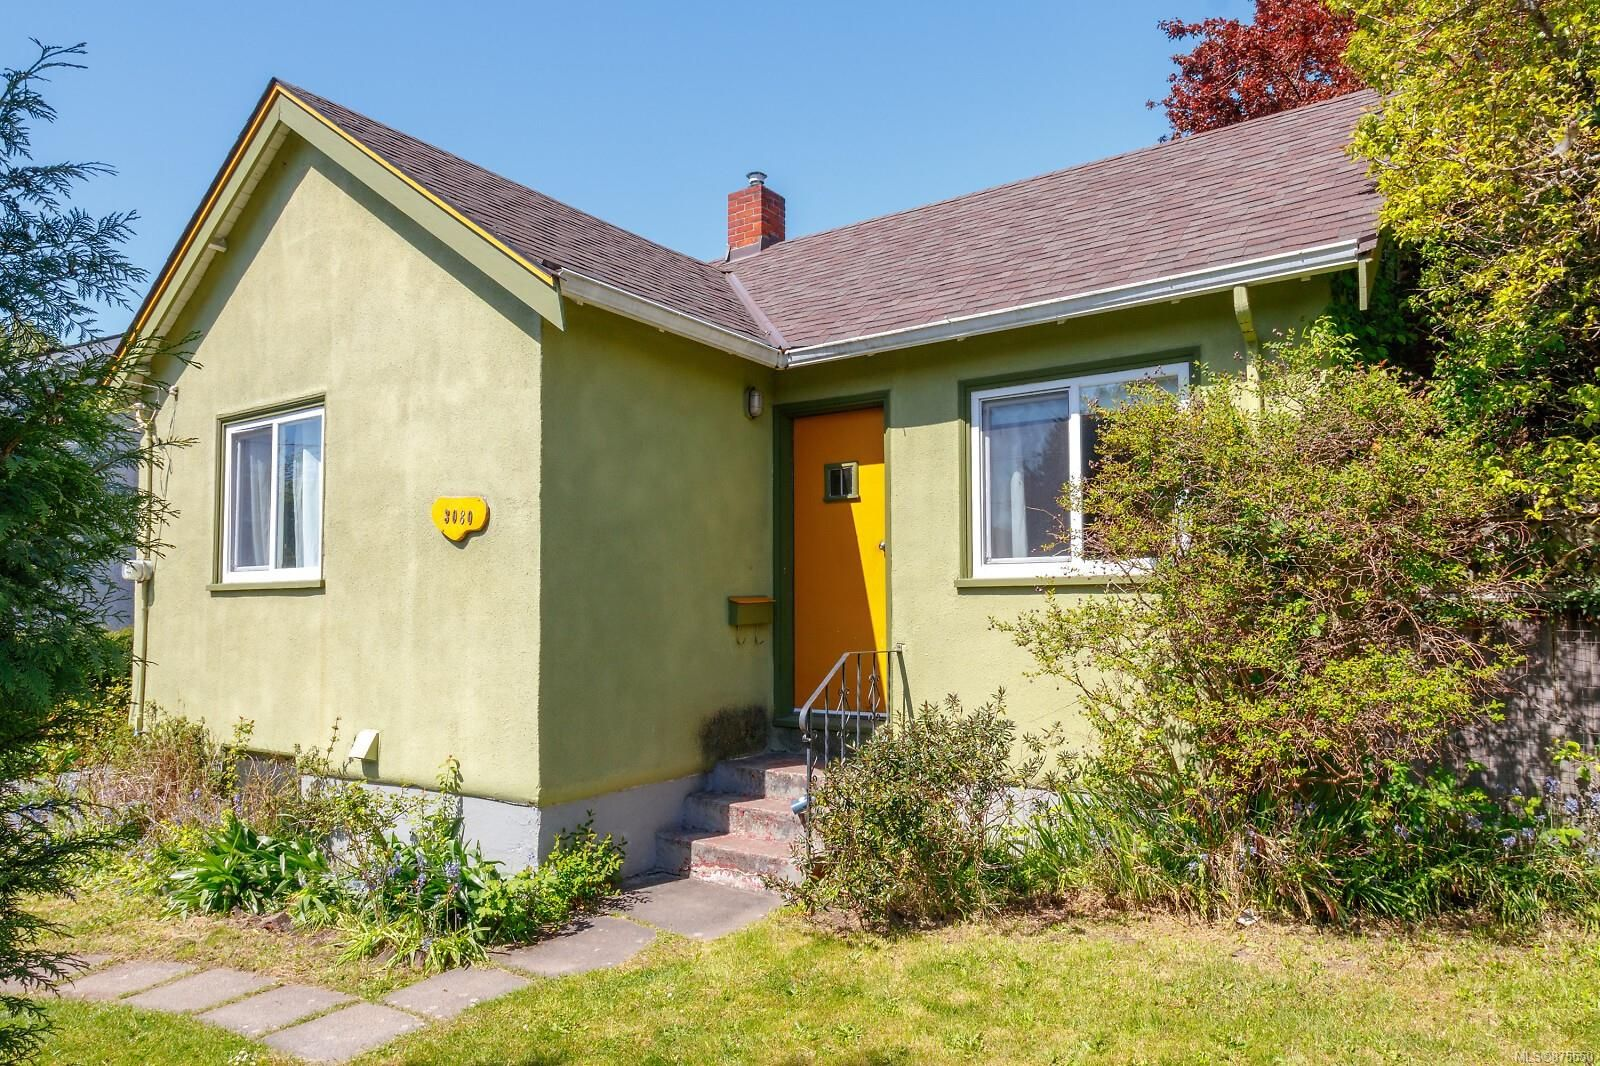 Main Photo: 3080 Orillia St in : SW Gorge House for sale (Saanich West)  : MLS®# 875550